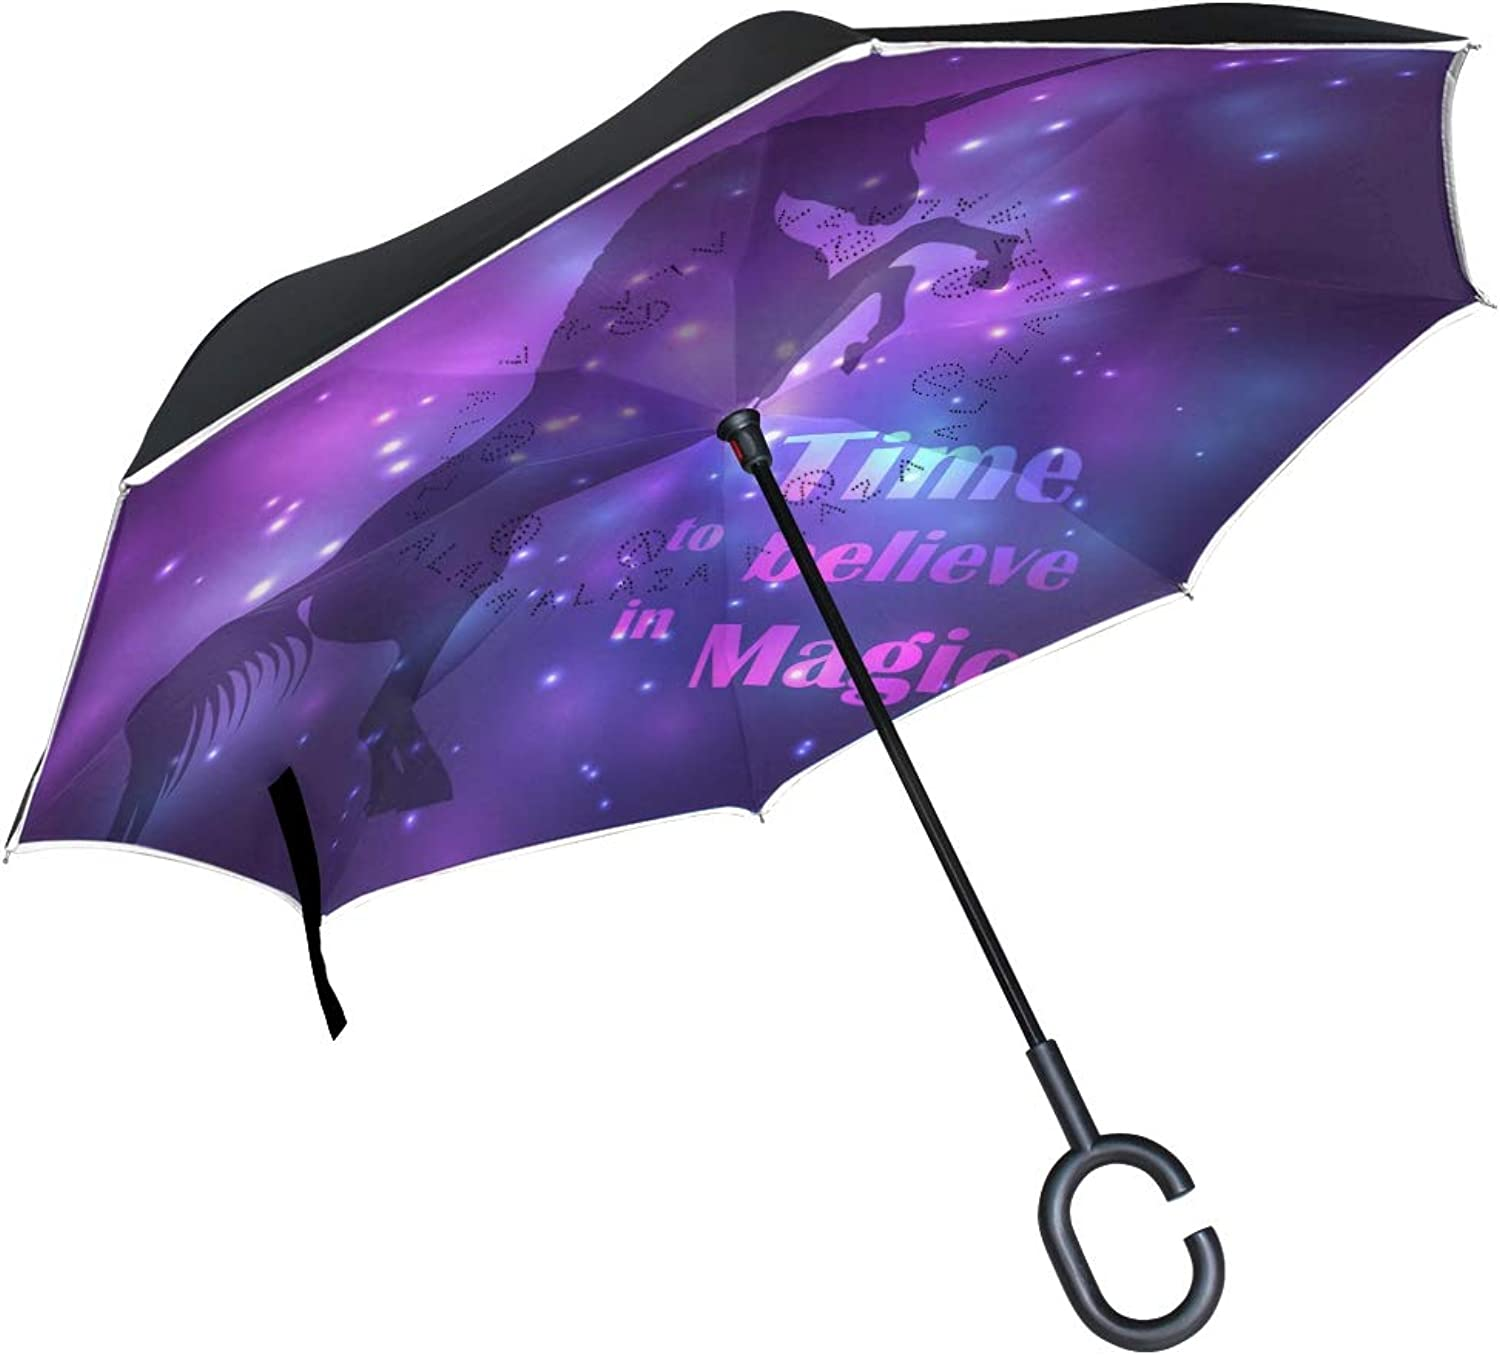 Ingreened Umbrella Double Layer Reverse Umbrella Waterproof Windproof UV Predection Straight Umbrella with CShaped Handle colorful Unicorn Lights Digital Printing for Car Rain Outdoor Use